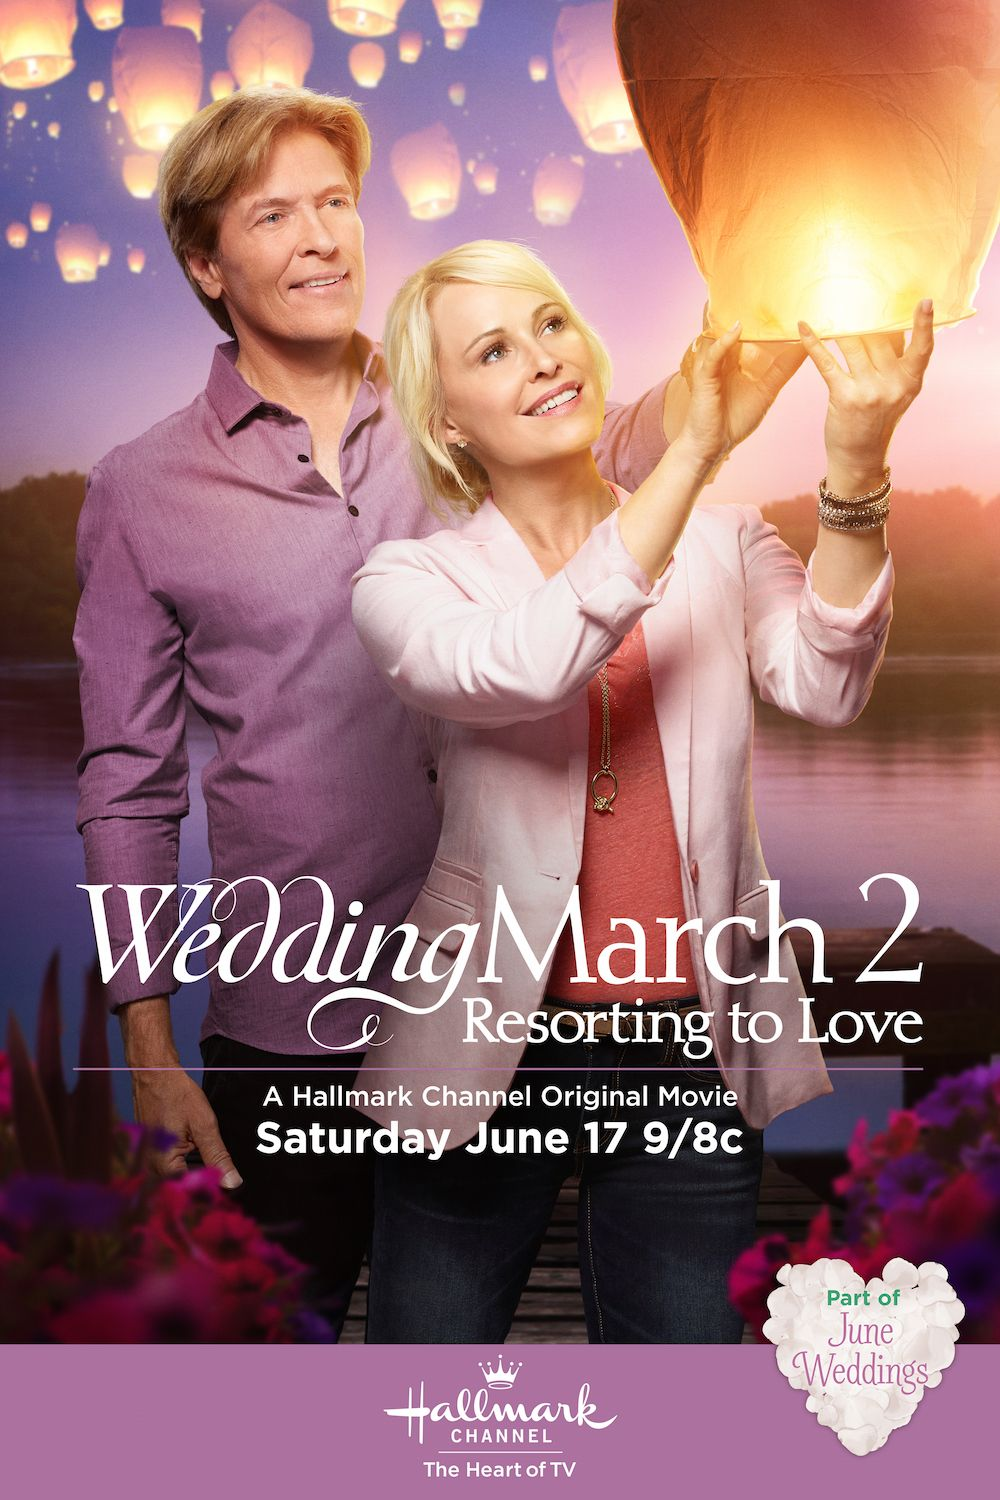 Wedding March 2 Resorting To Love Starring Jack Wagner And Josie